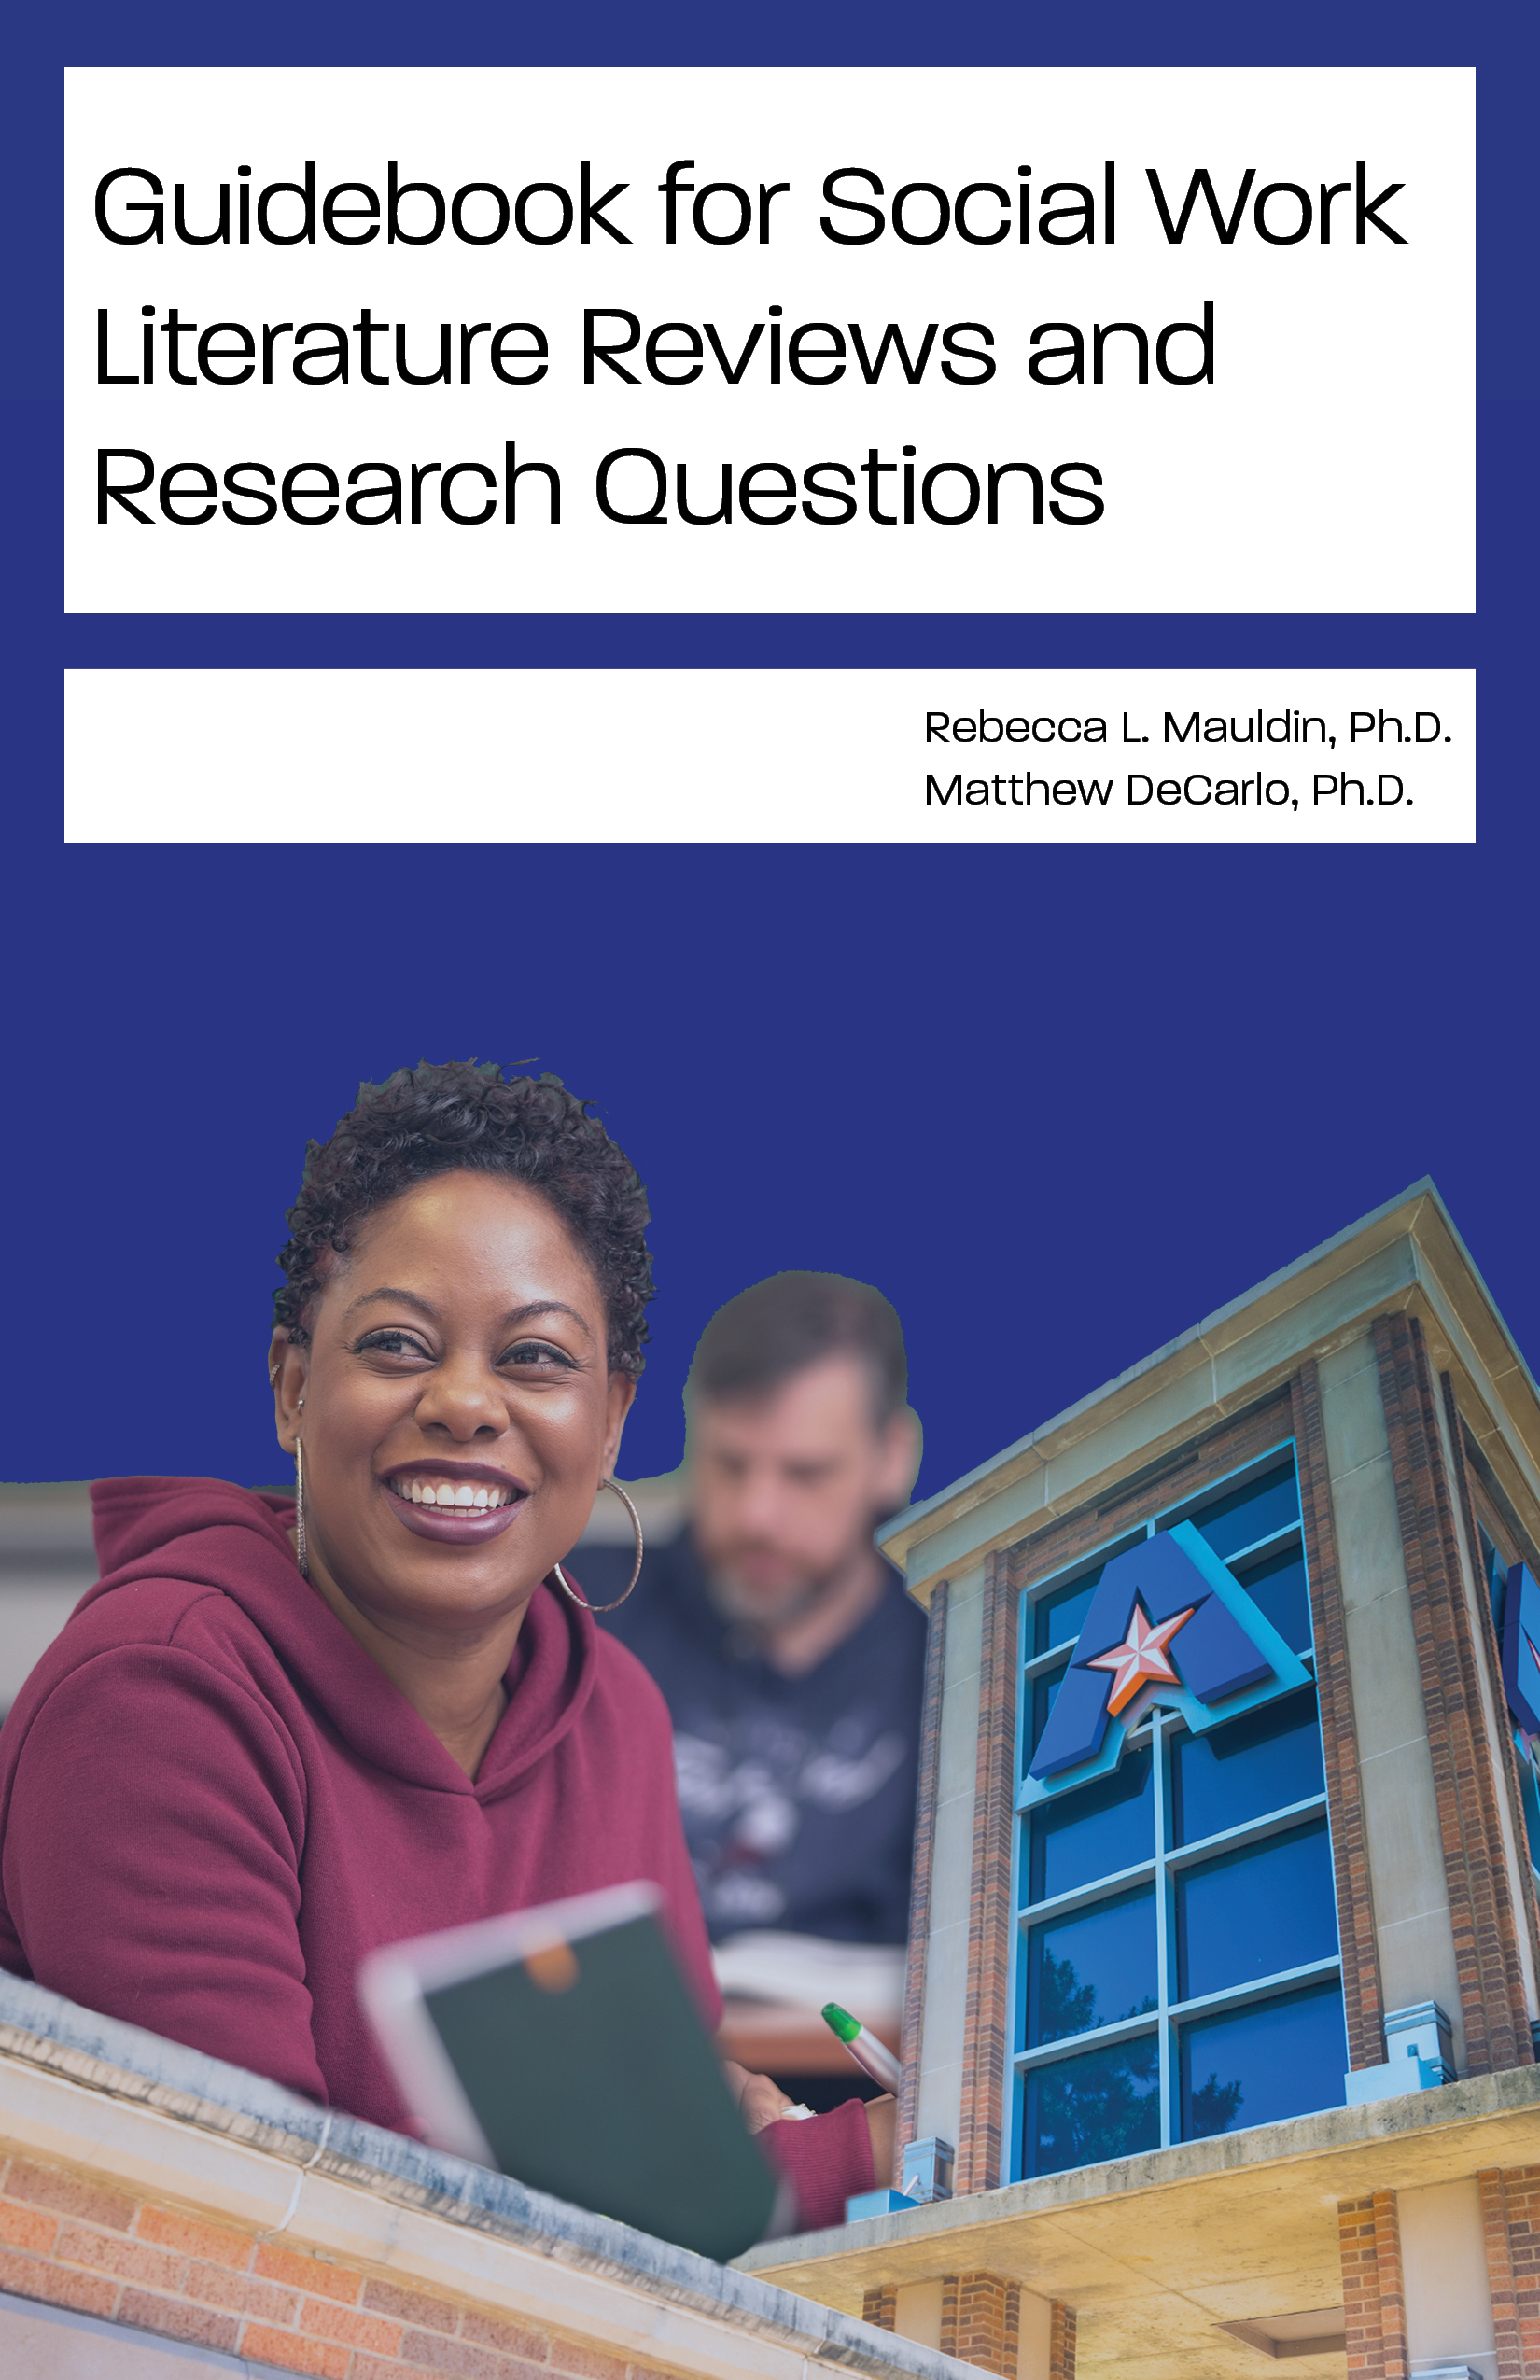 Cover image for Guidebook for Social Work Literature Reviews and Research Questions